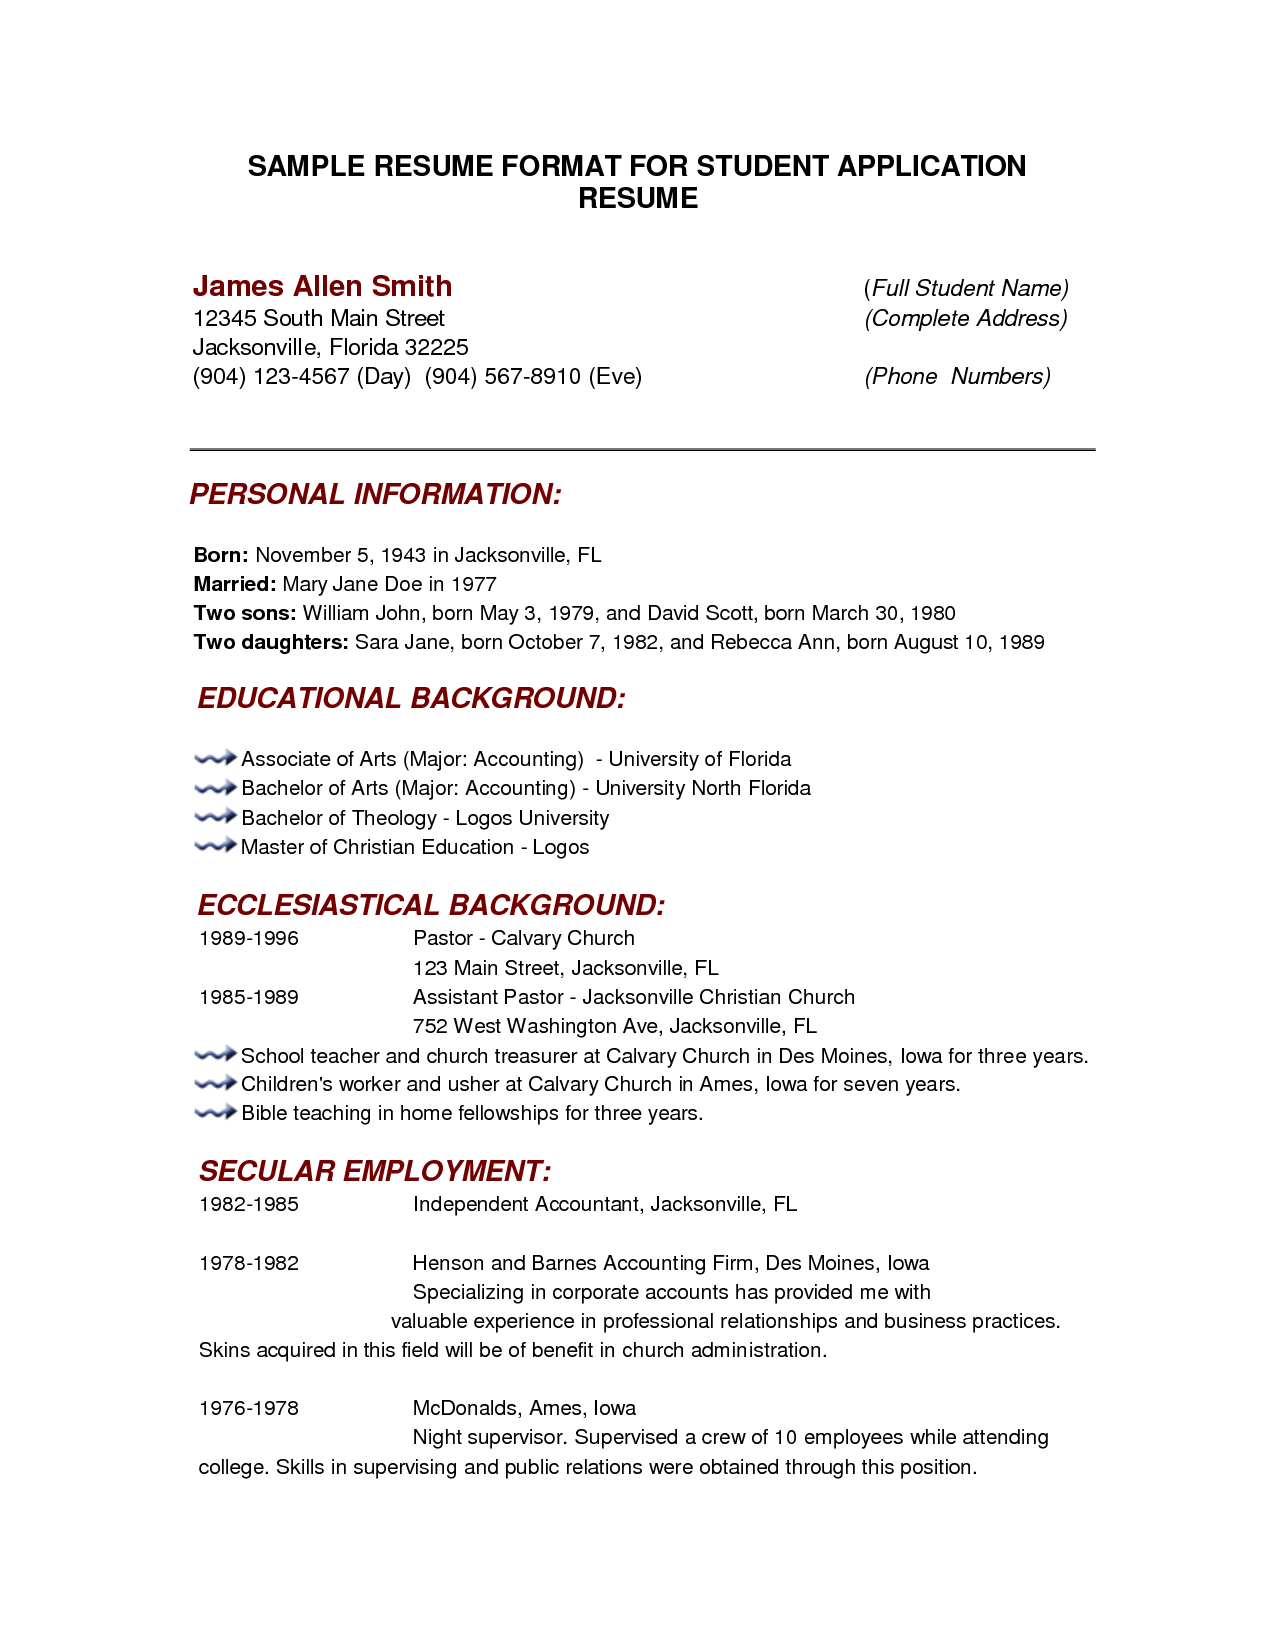 Free Student Resume Templates Cool Pinjobresume On Resume Career Termplate Free  Pinterest